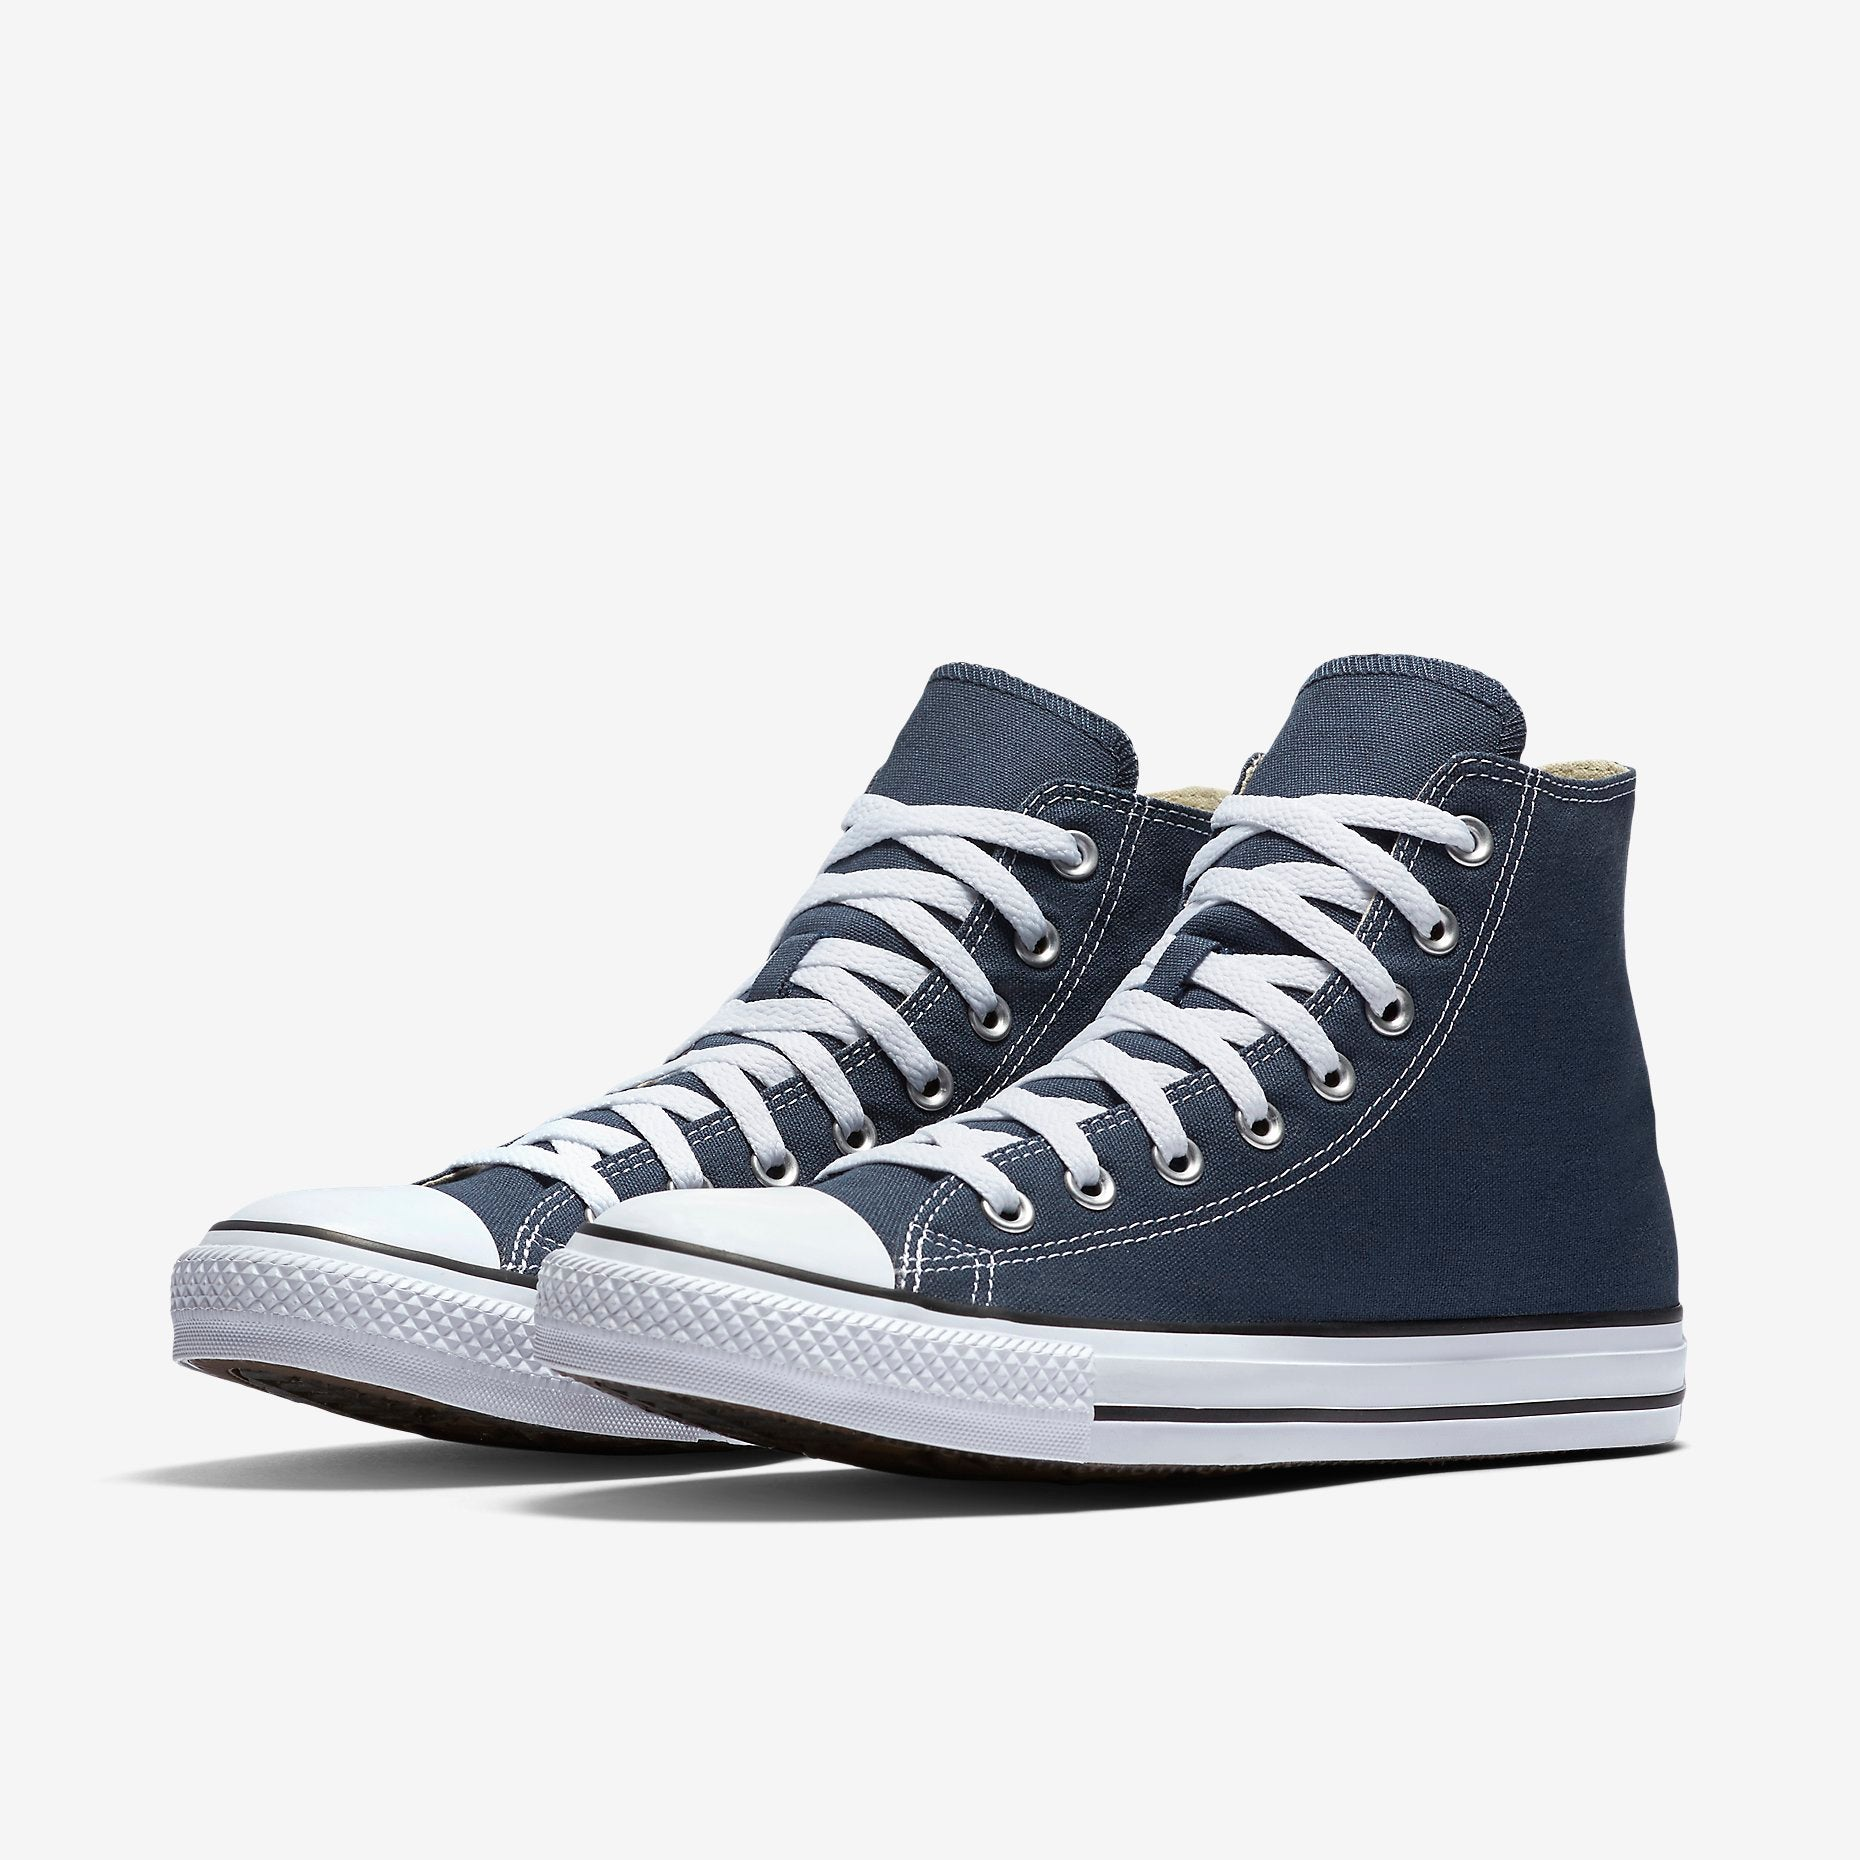 converse chuck taylor all star high top noir uk4